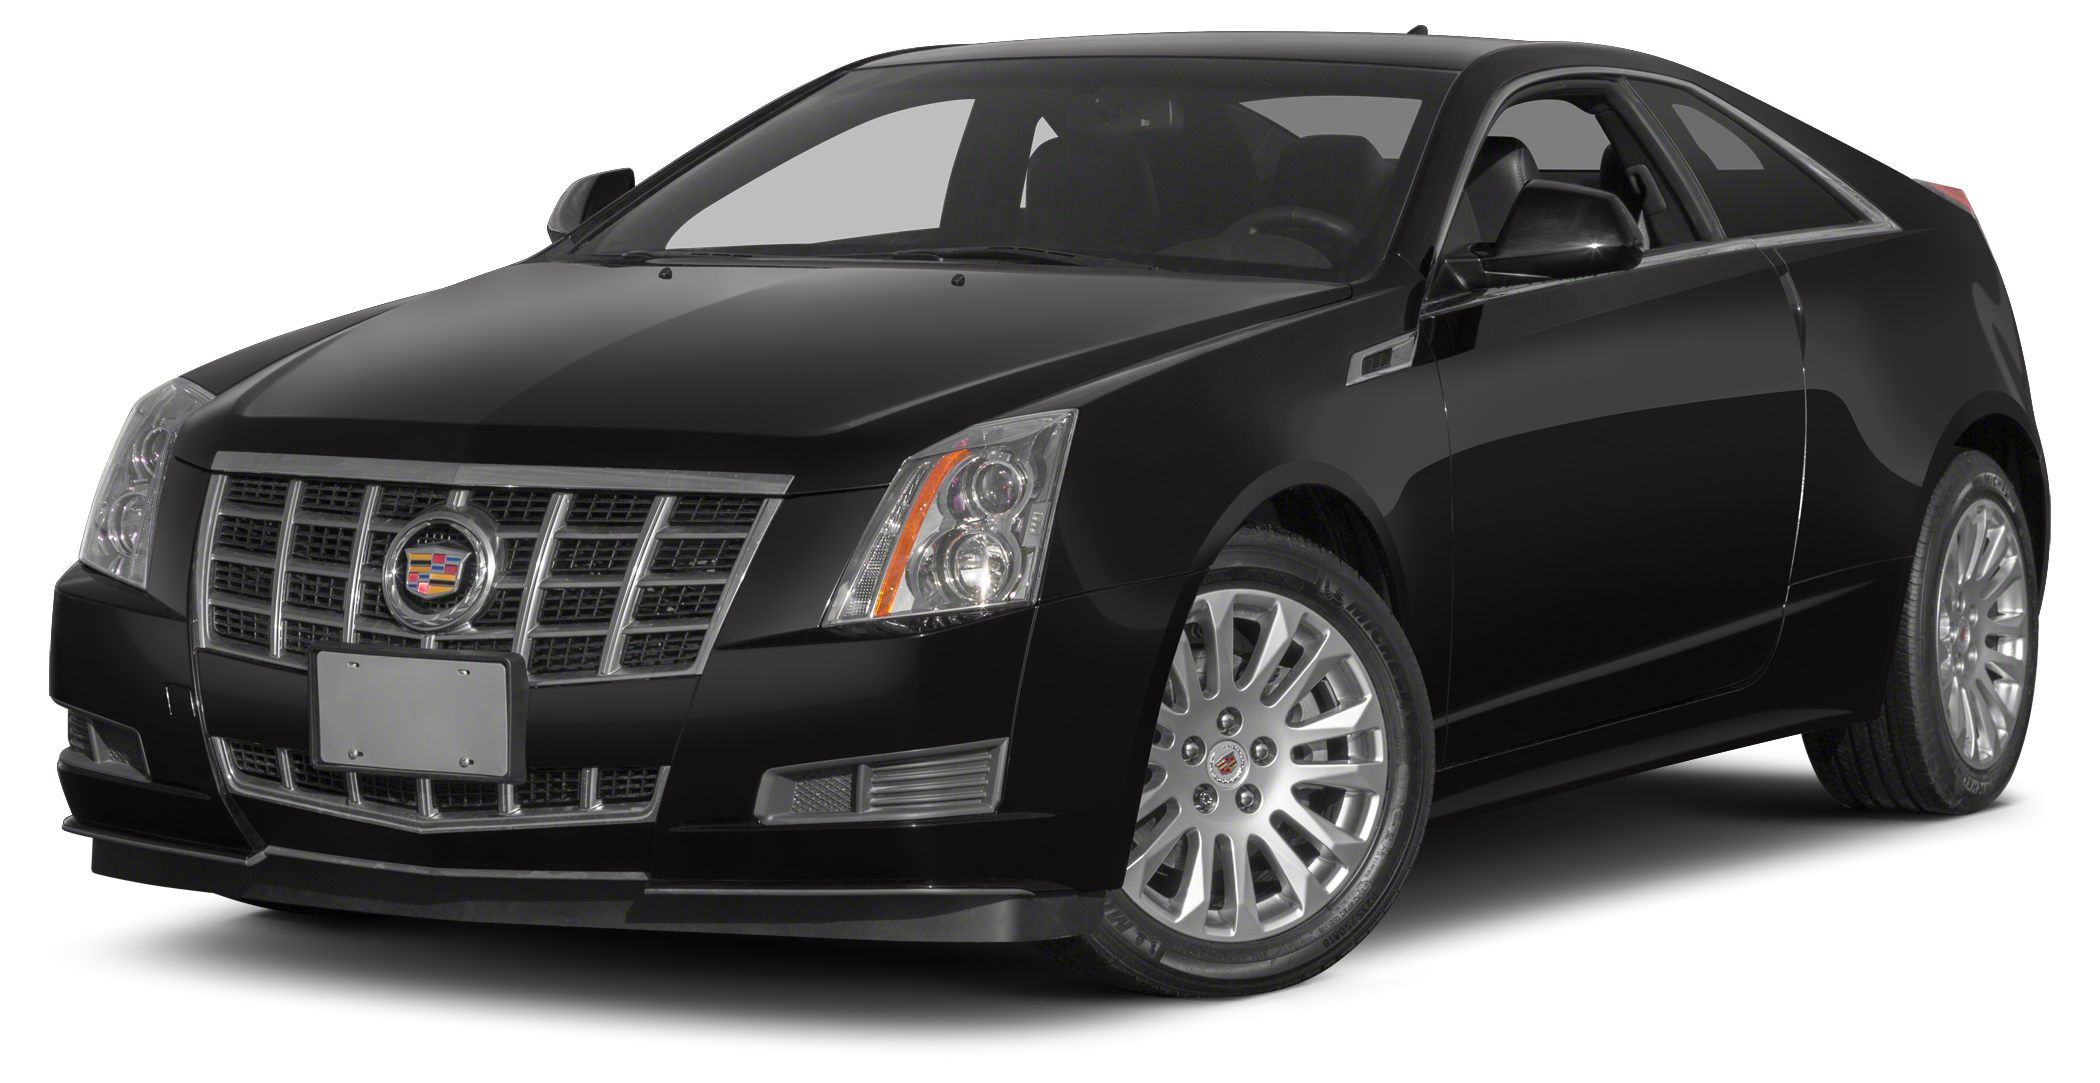 2012 Cadillac CTS Performance CARFAX 1-Owner 12000 Mile Warranty 2700 below Kelley Blue Book